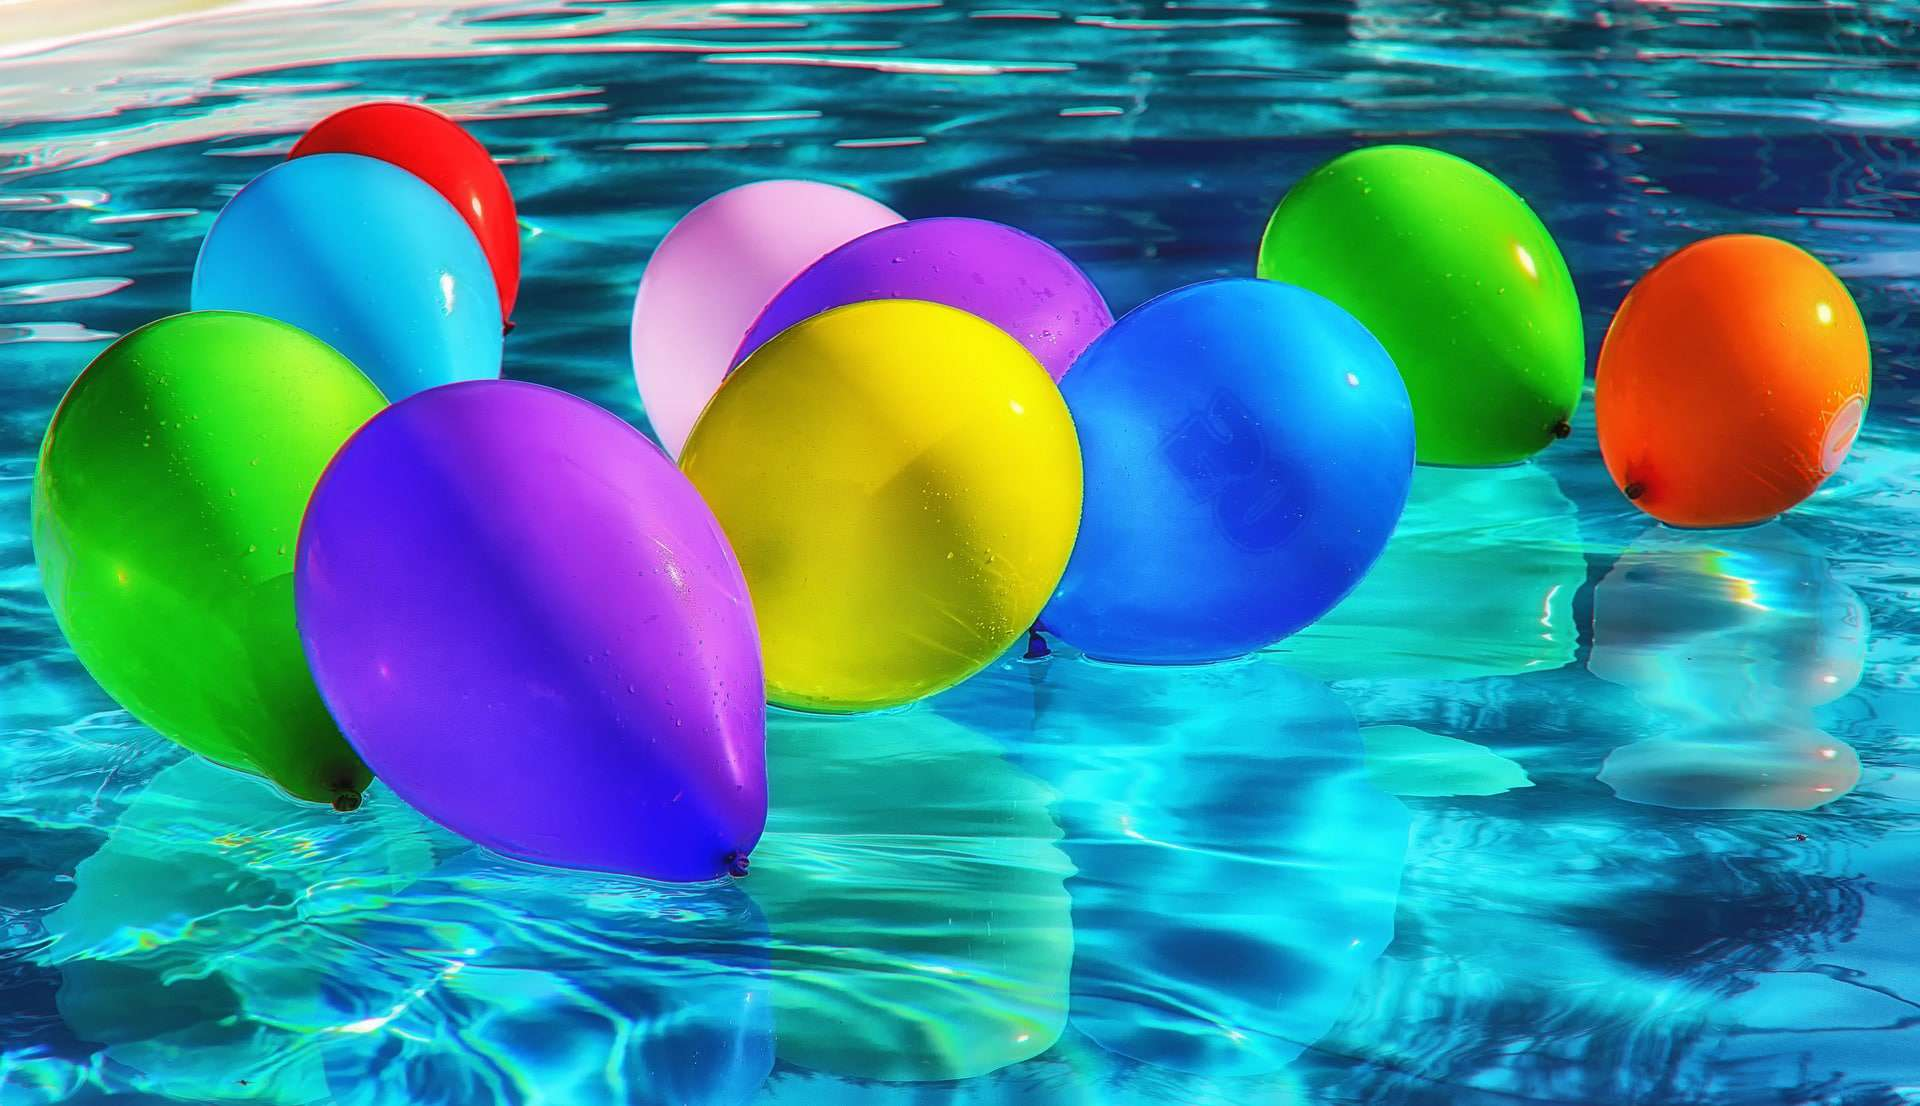 Water balloon surprise birthday party ideas required friends with a good sense of humor